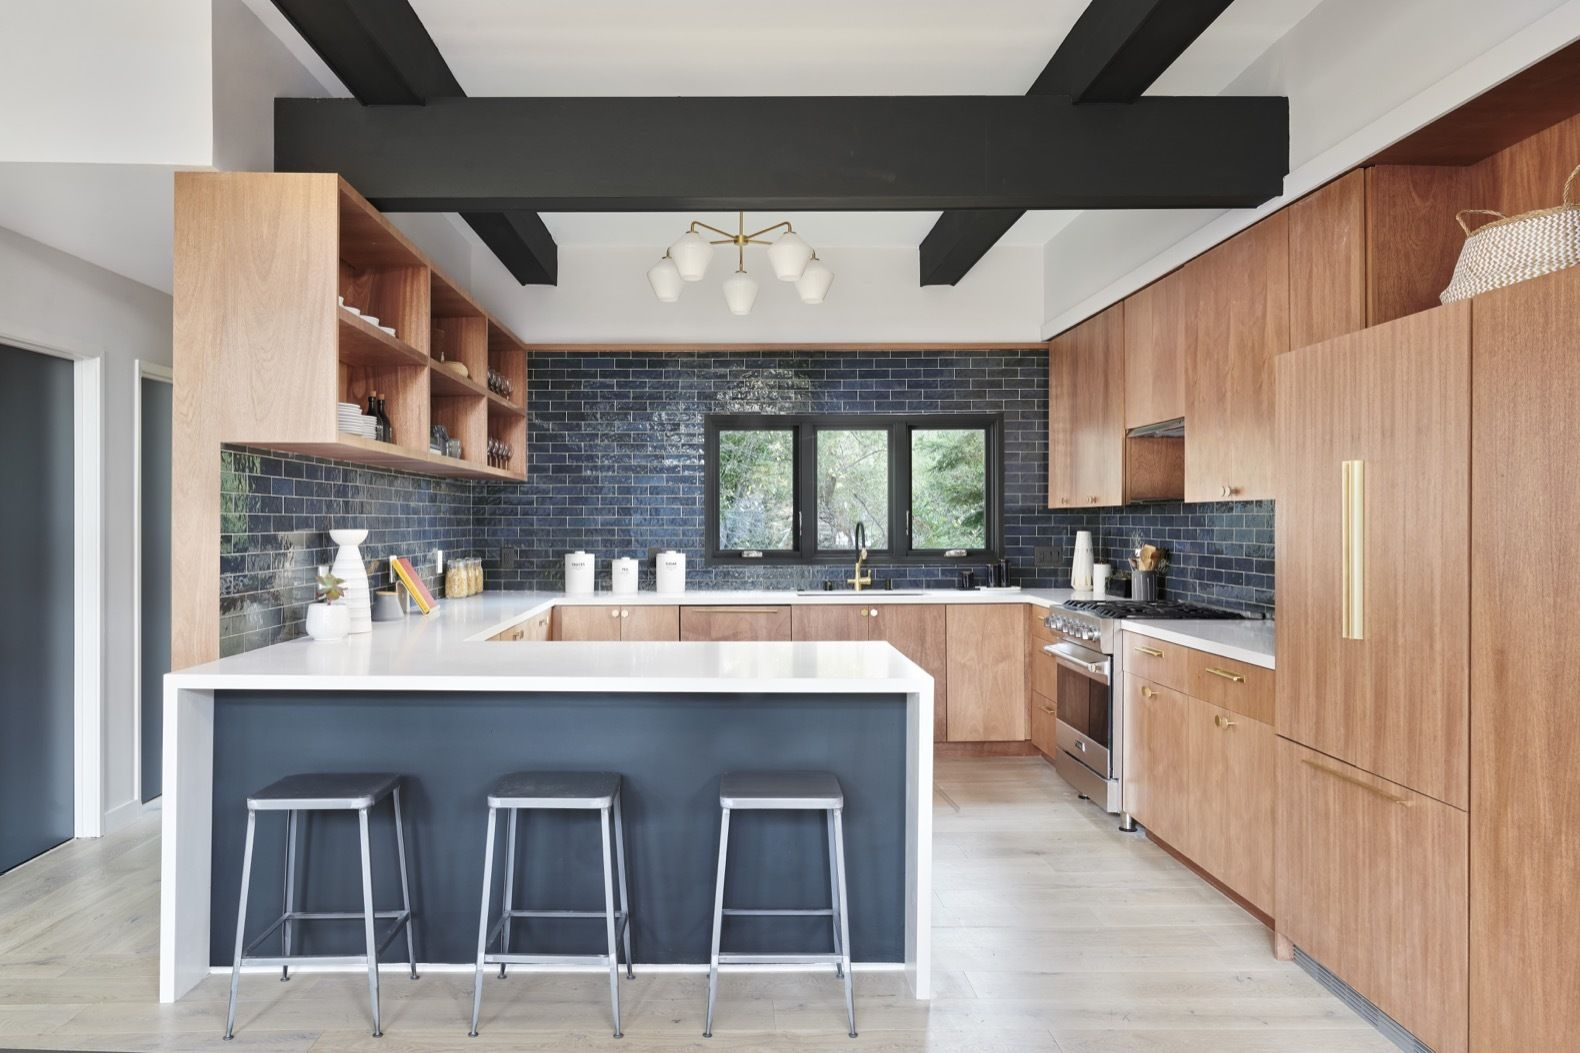 See Arch removed a wall to create a more spacious kitchen with a stronger visual connection to the dining area. The updated kitchen is outfitted with quartz countertops and Viking, Fisher Paykel, and Asko appliances.